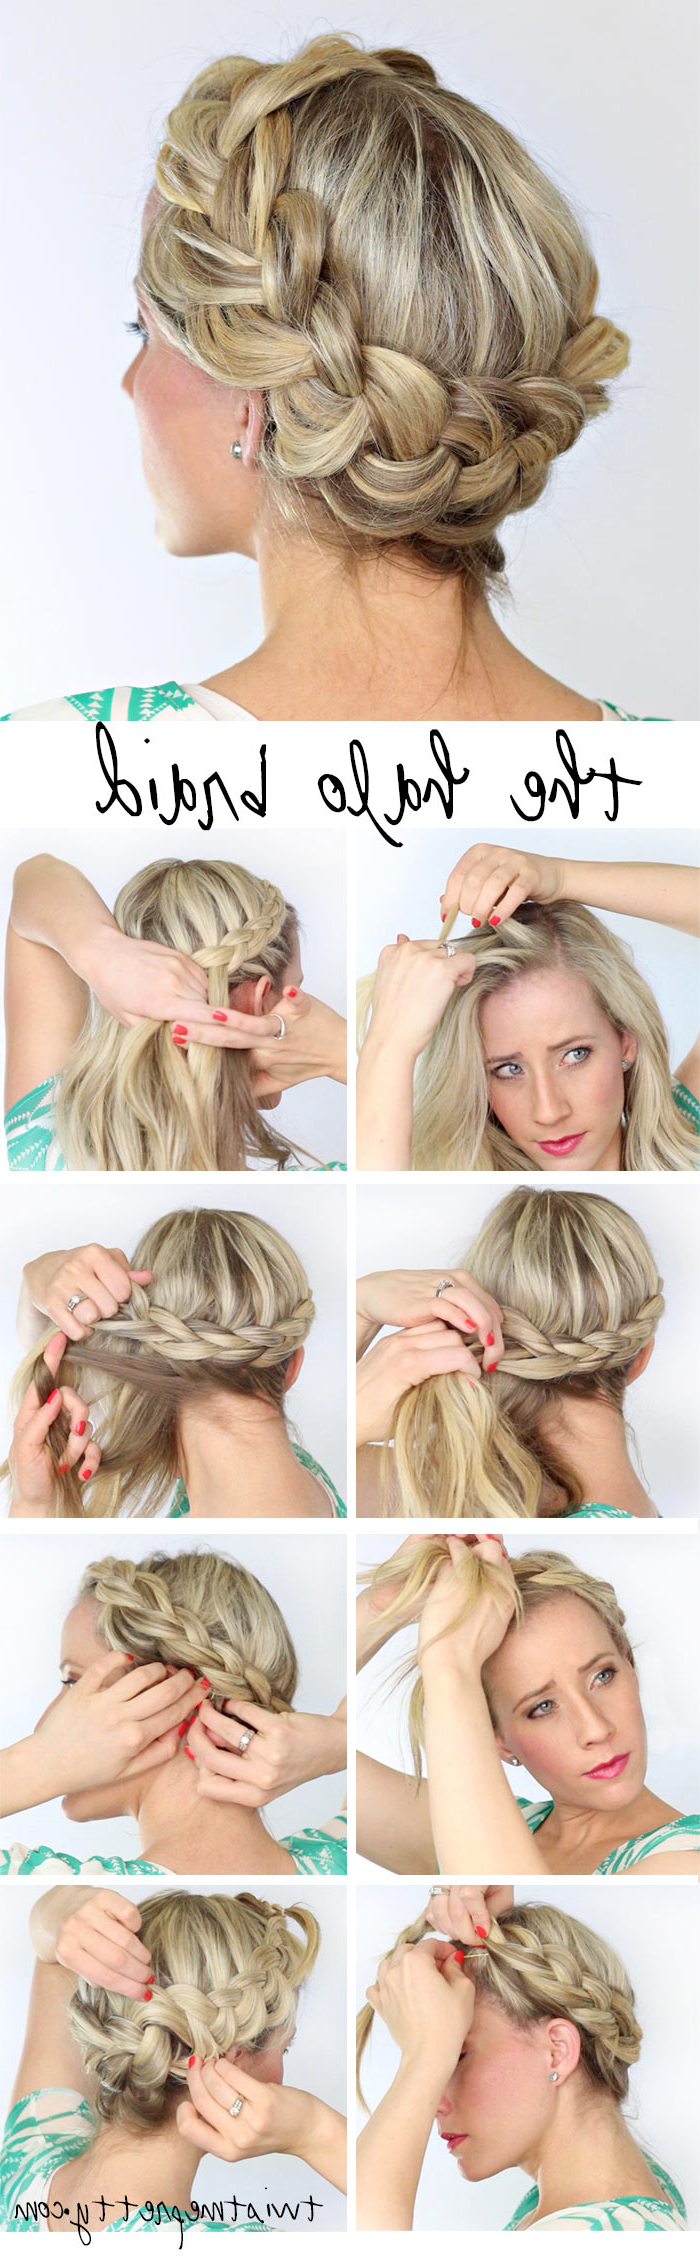 A Fat Halo Braid – Twist Me Pretty Pertaining To Most Recently Released Halo Braided Hairstyles With Bangs (Gallery 17 of 20)